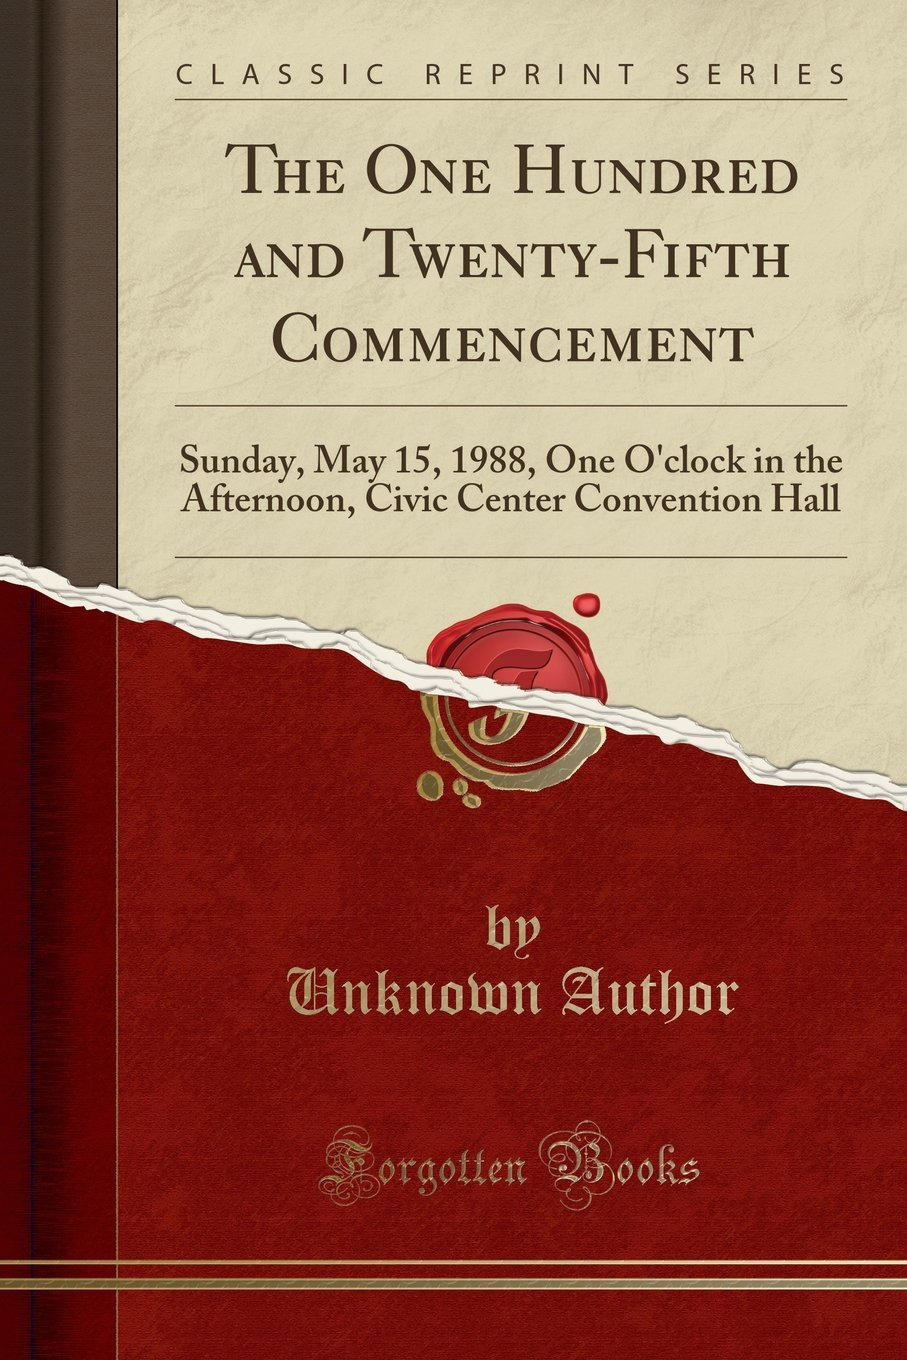 Download The One Hundred and Twenty-Fifth Commencement: Sunday, May 15, 1988, One O'clock in the Afternoon, Civic Center Convention Hall (Classic Reprint) pdf